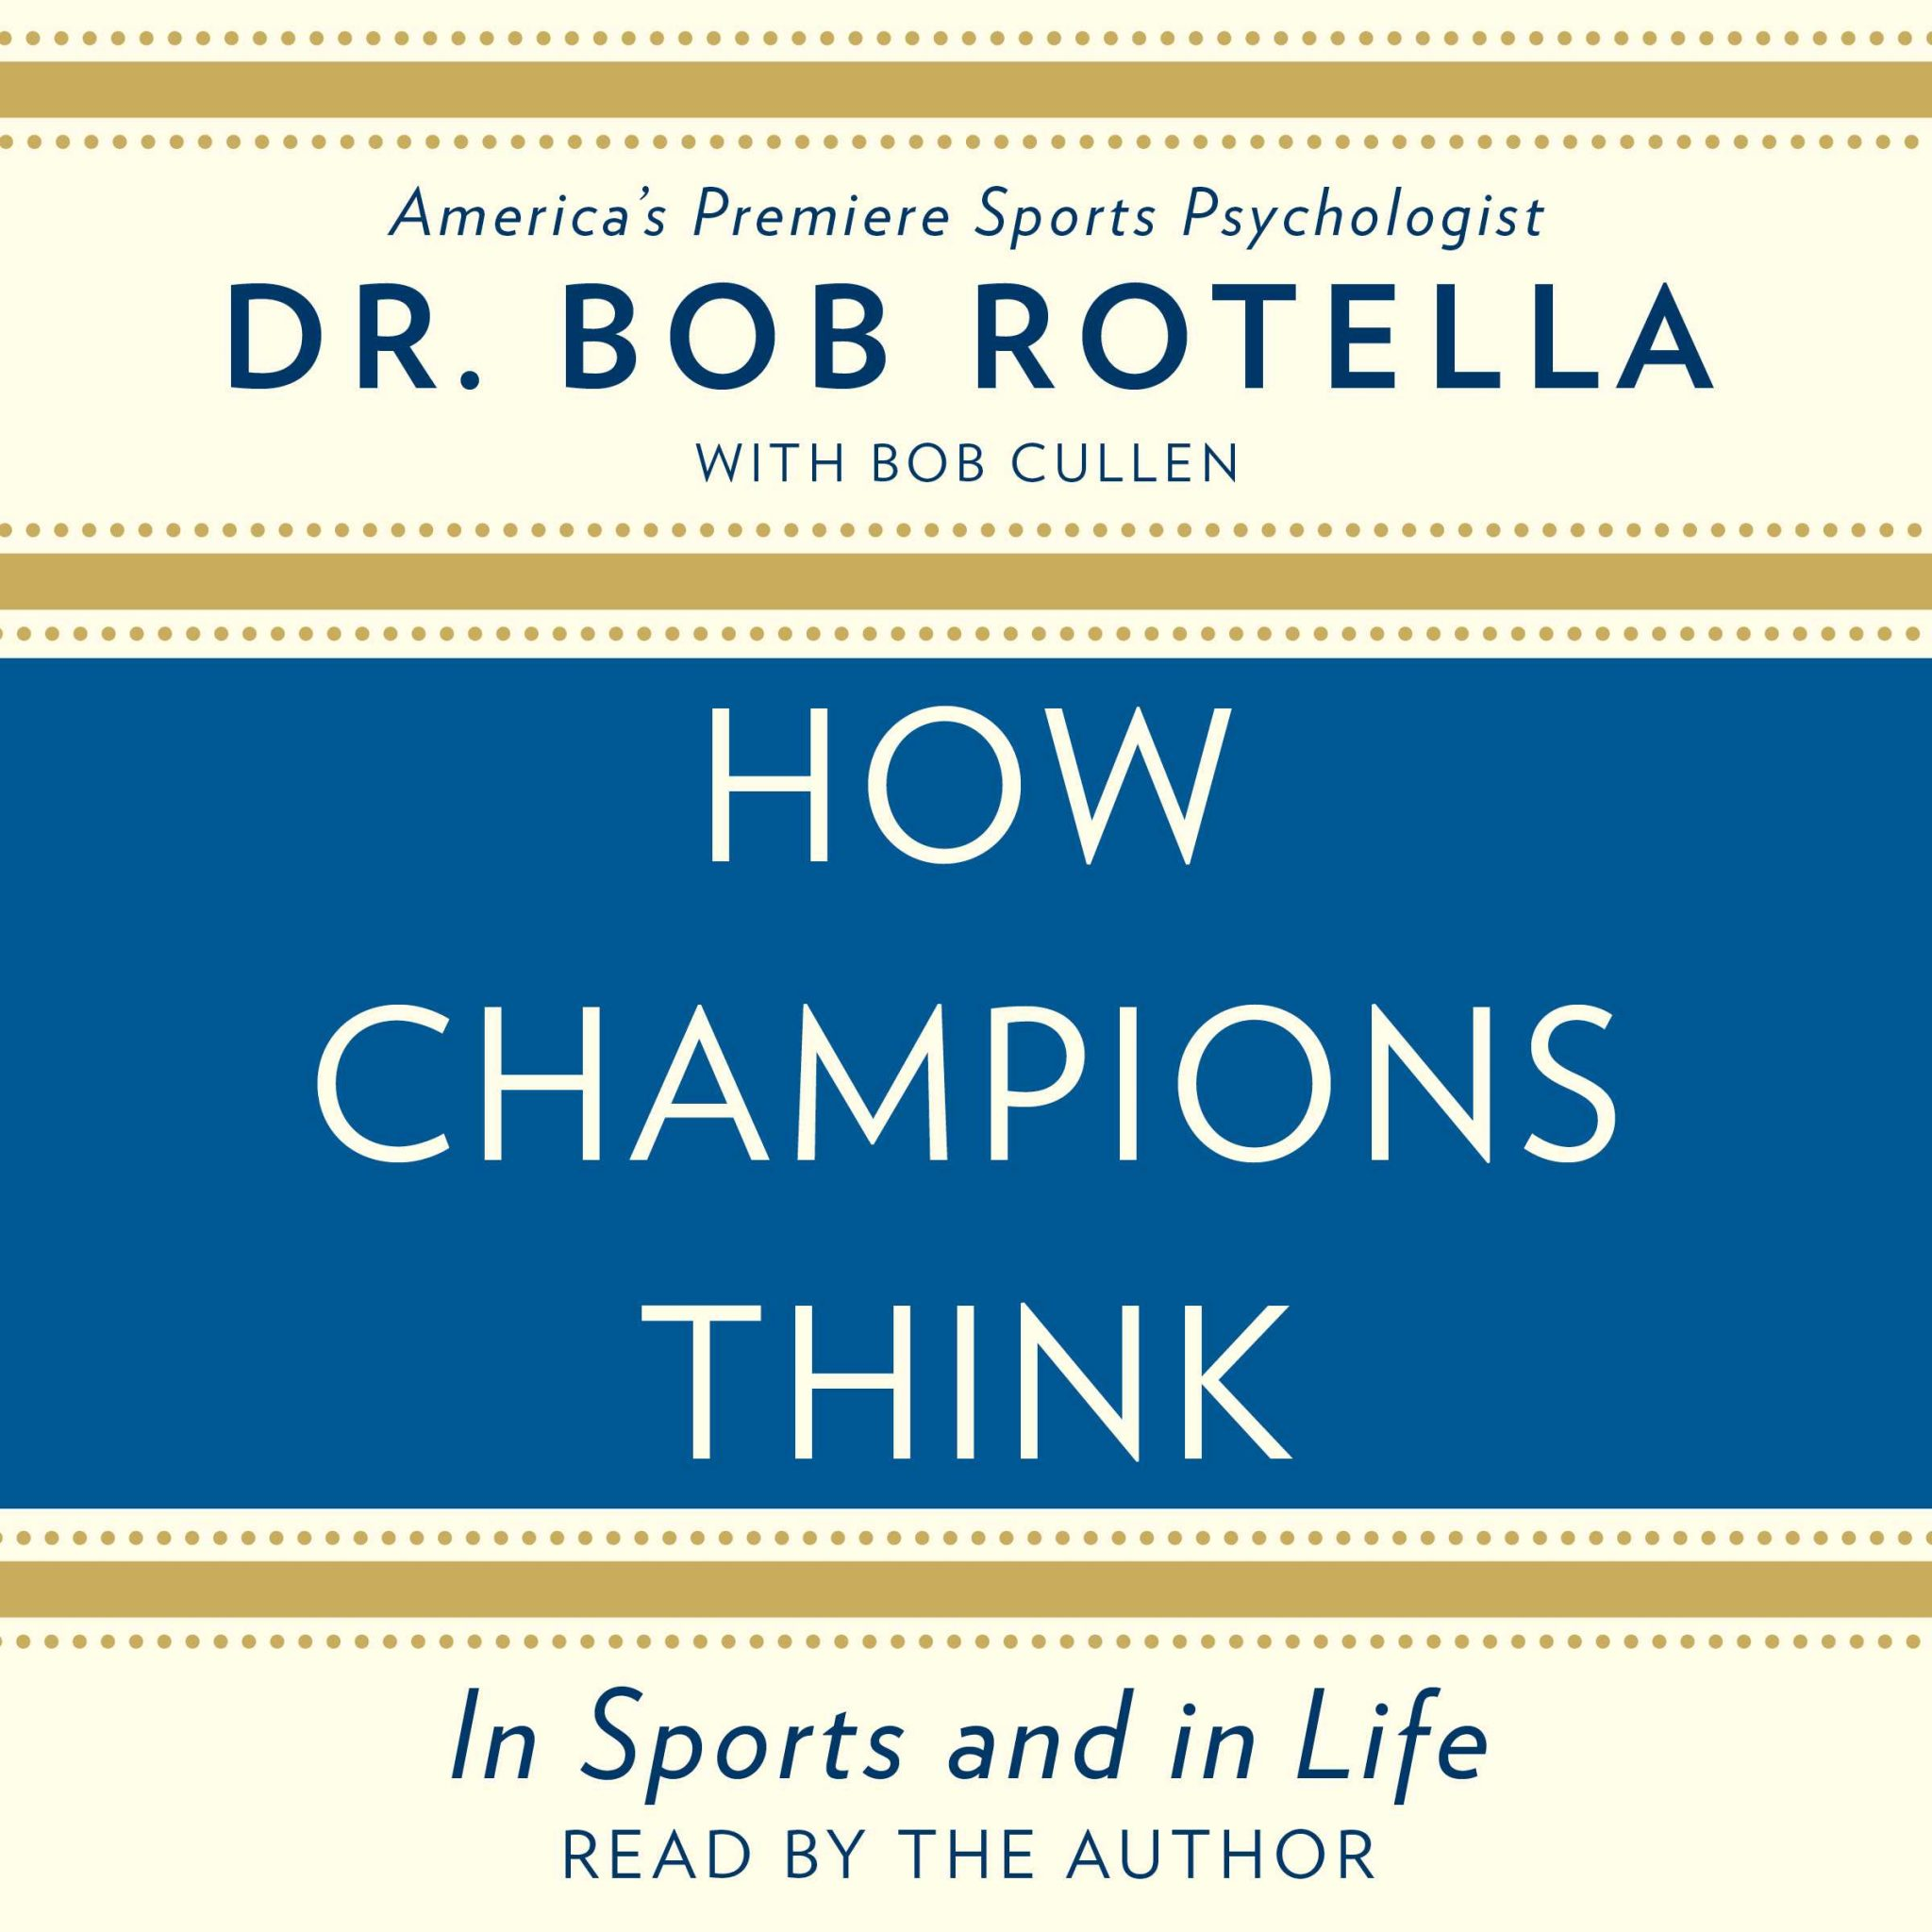 HOW CHAMPIONS THINK, BY DR. BOB ROTELLA